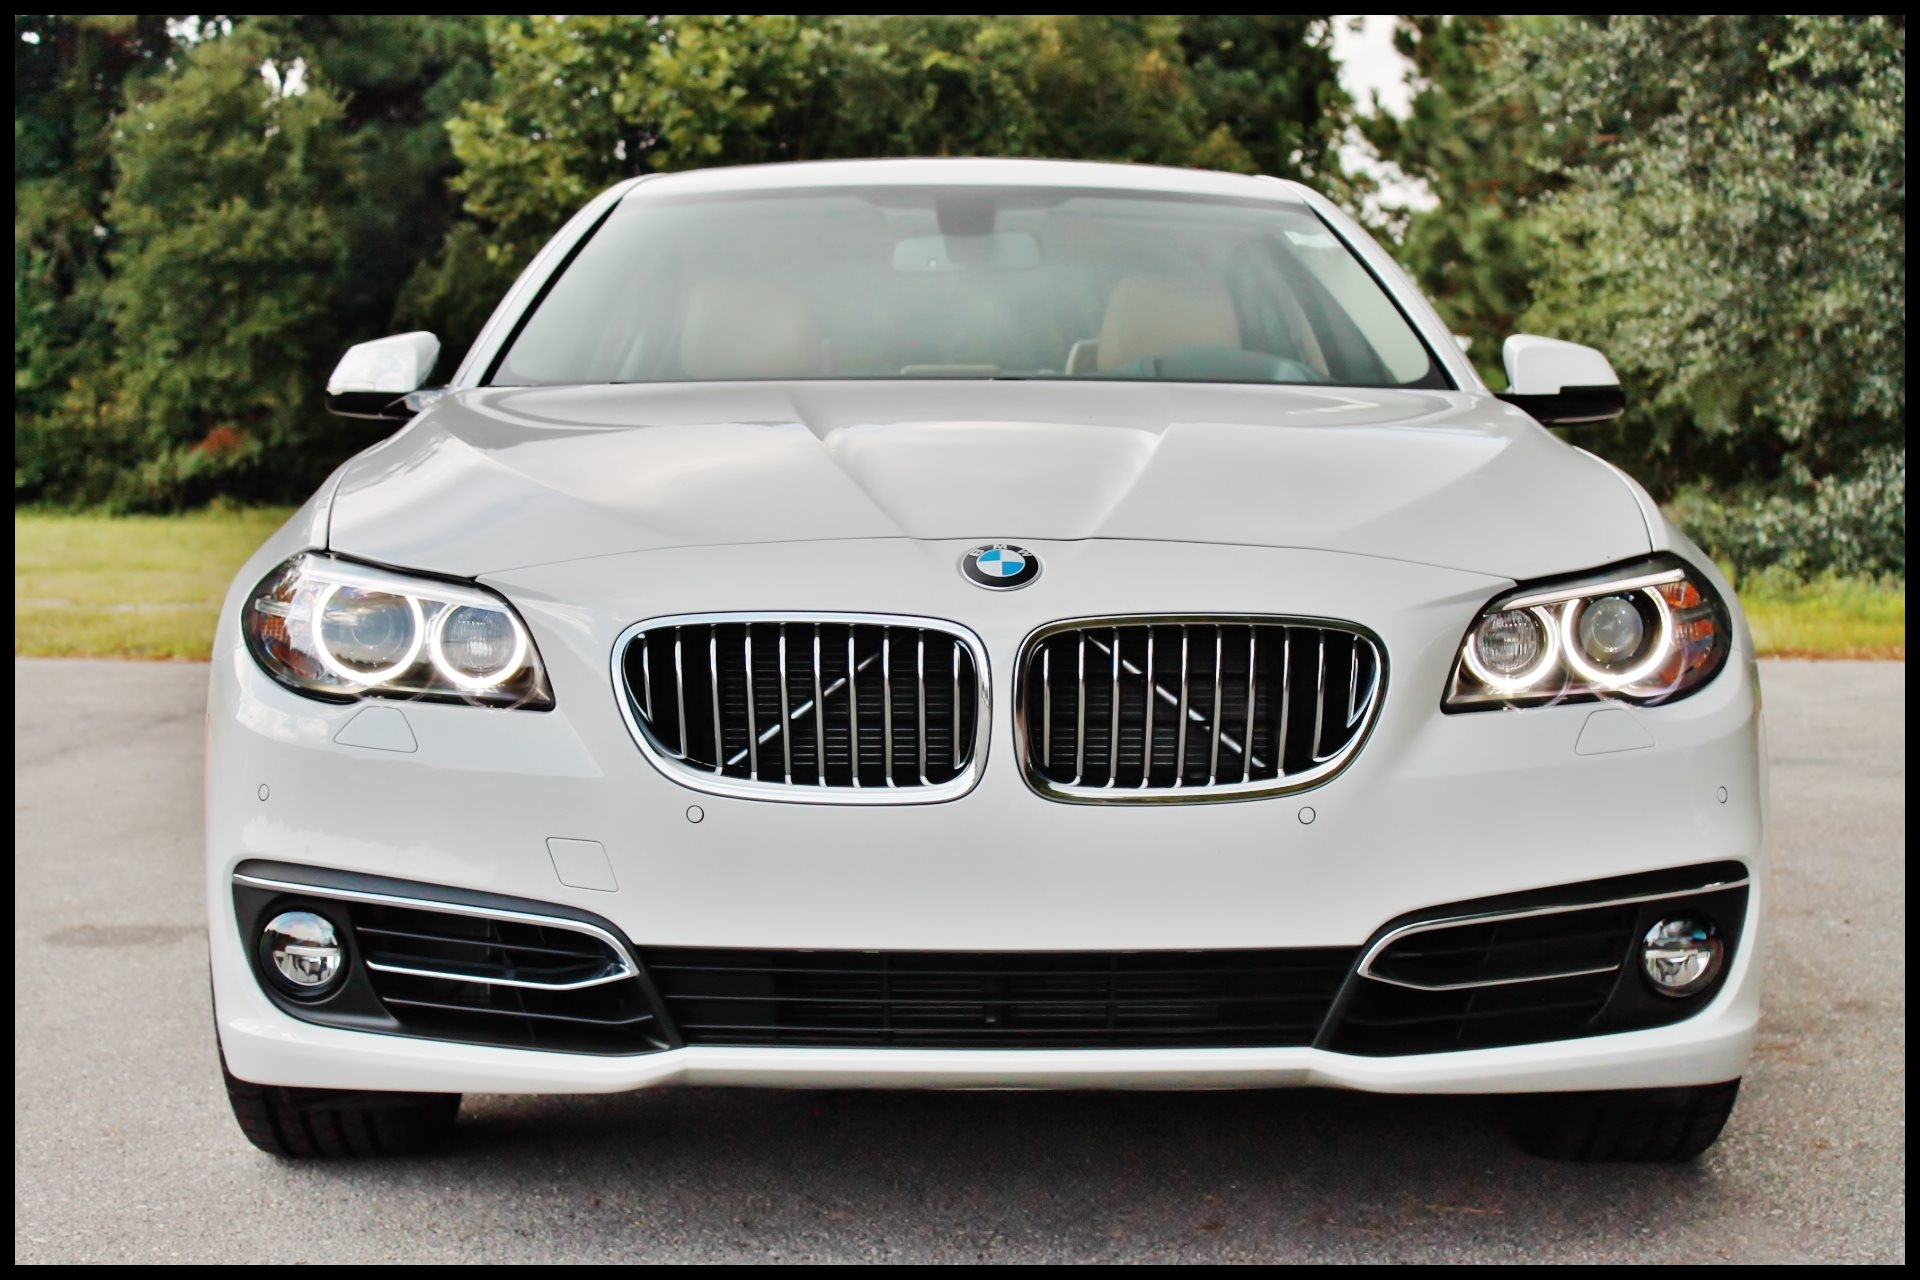 For drivers in the Fayetteville NC area looking for a high performance vehicle that provides superb craftsmanship highly intuitive technology and